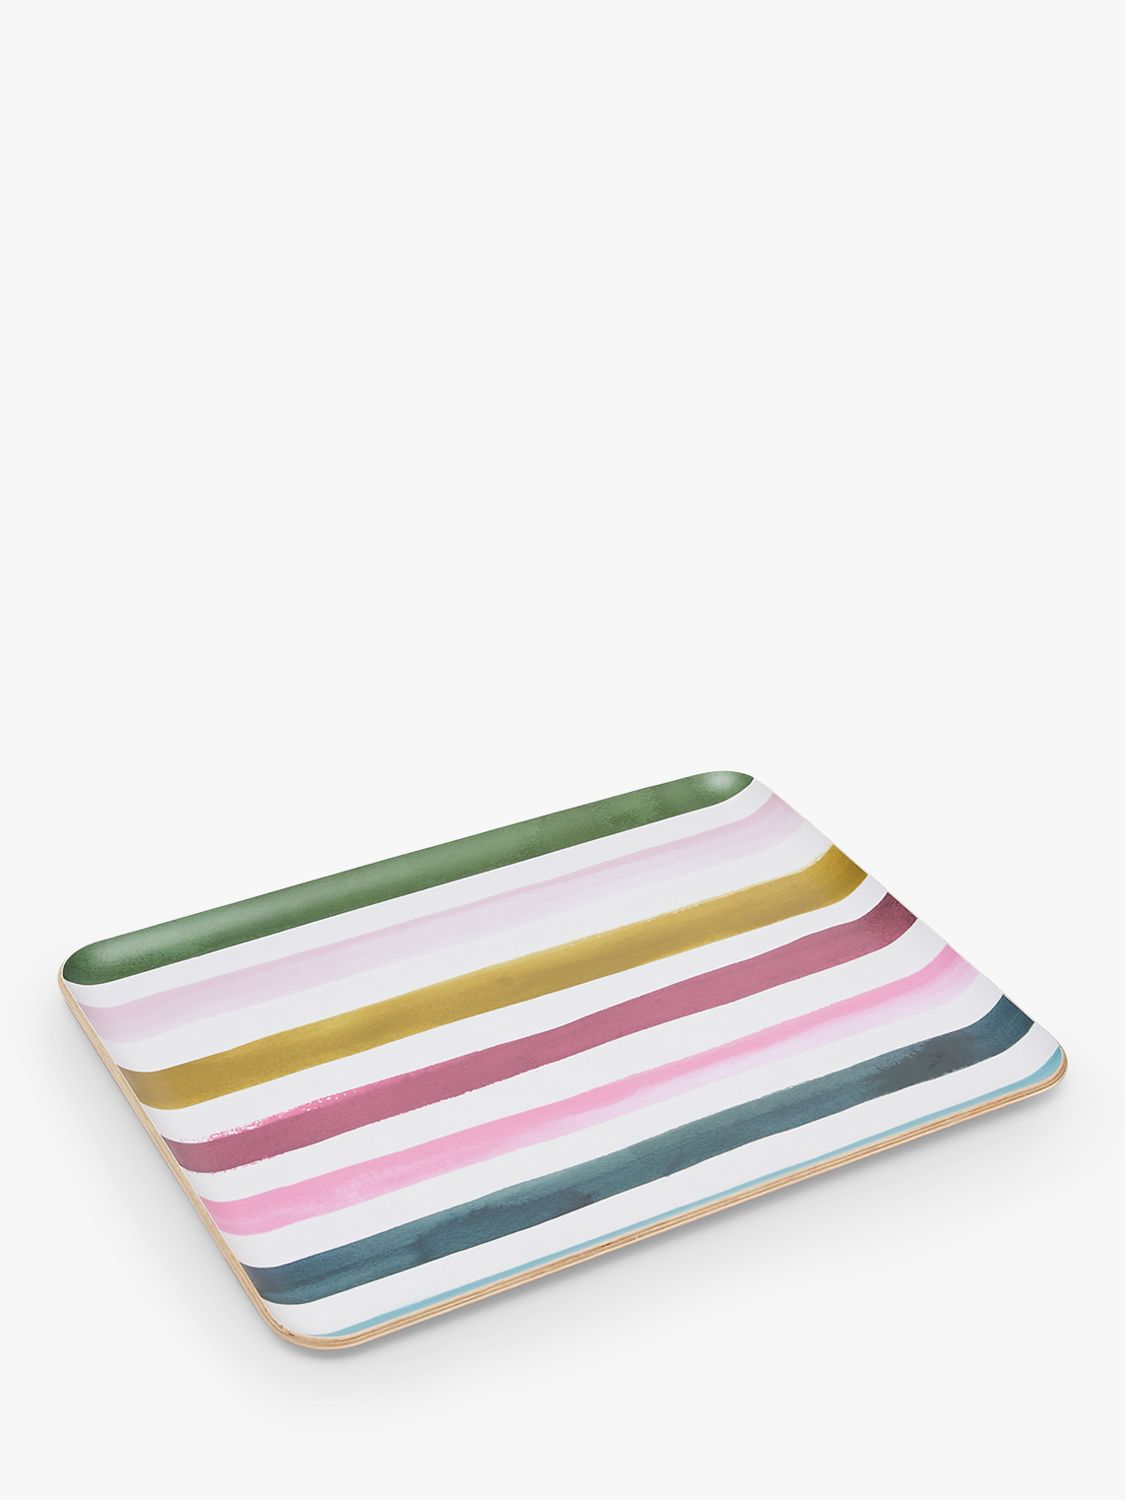 Joules Large Striped Willow Wood Tray, 36.5cm, Multi